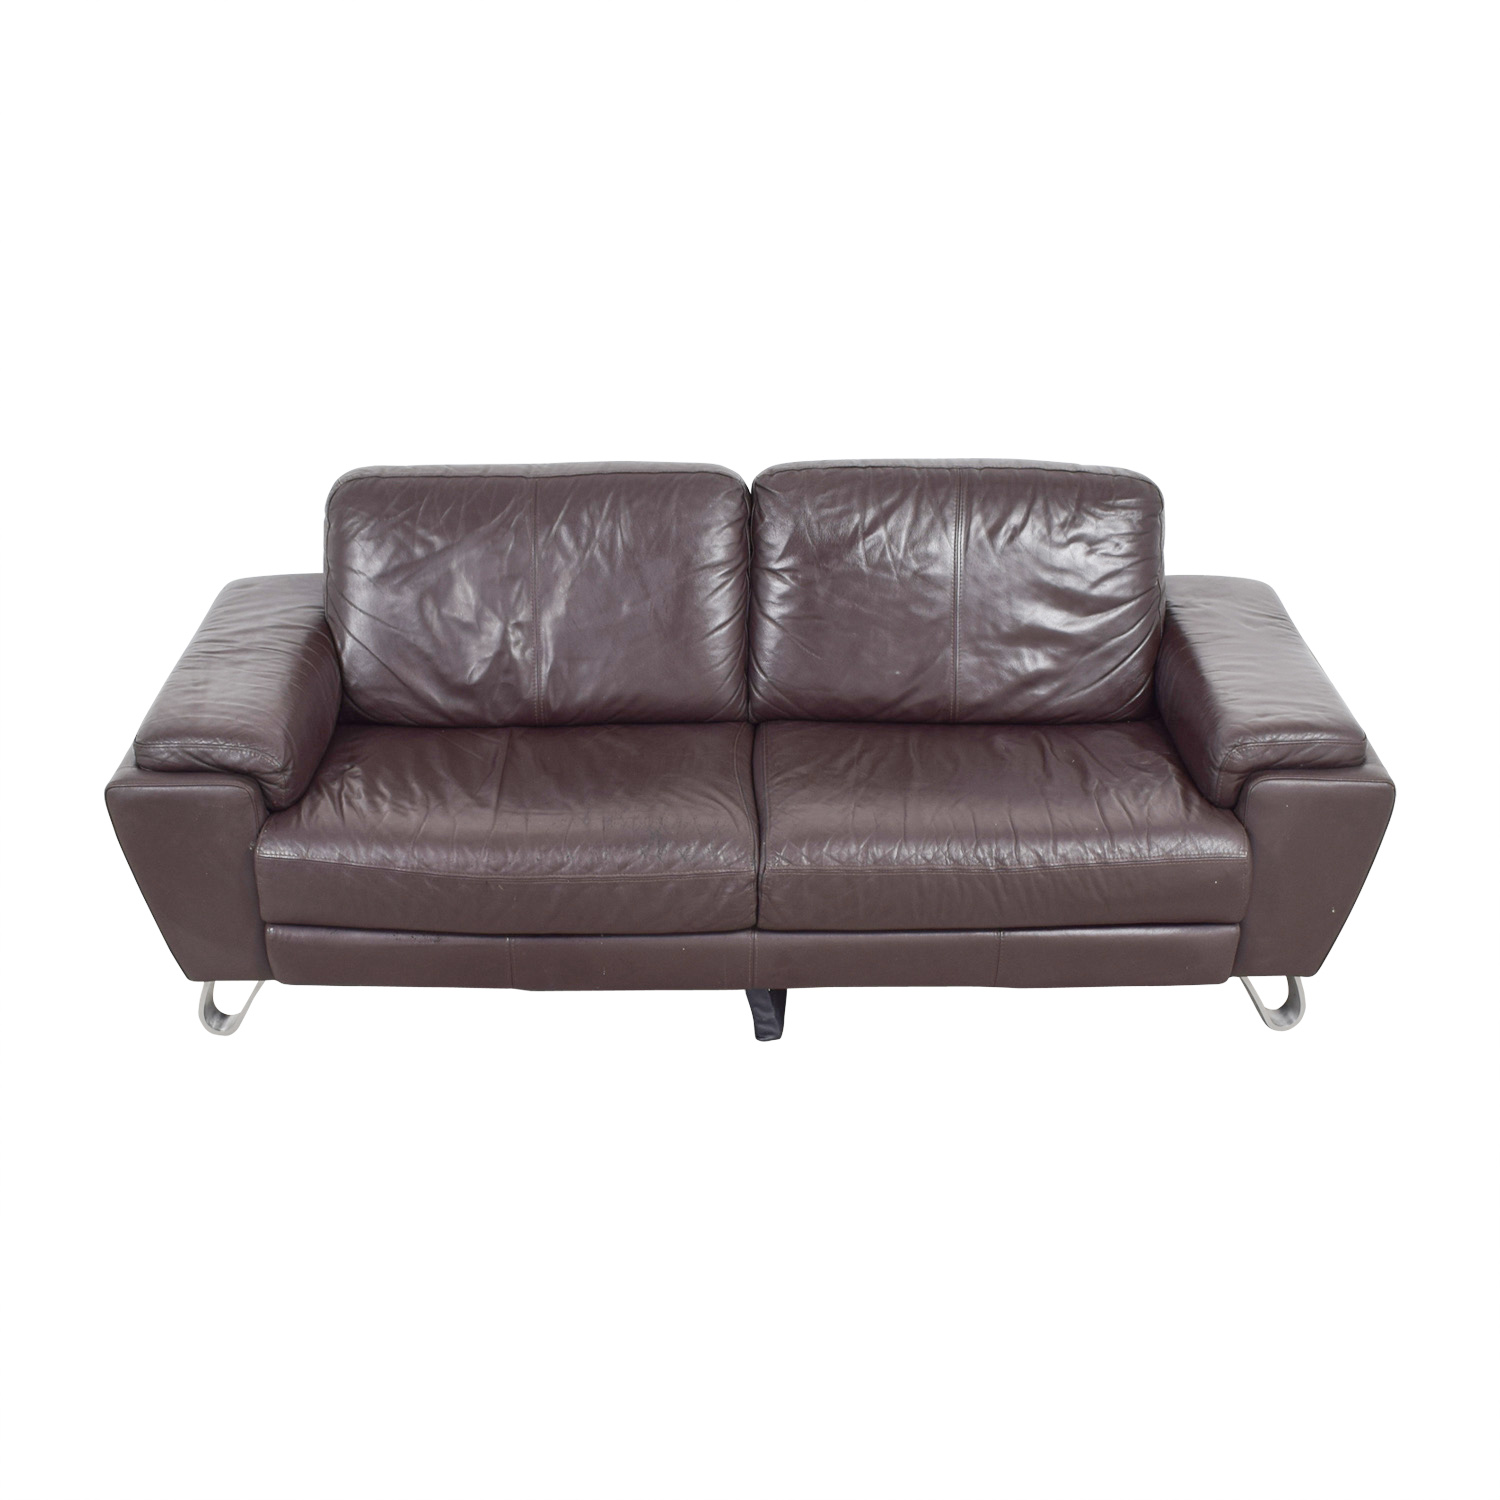 Michael Angelo Design Michael Angelo Design Brown Leather Sofa on sale